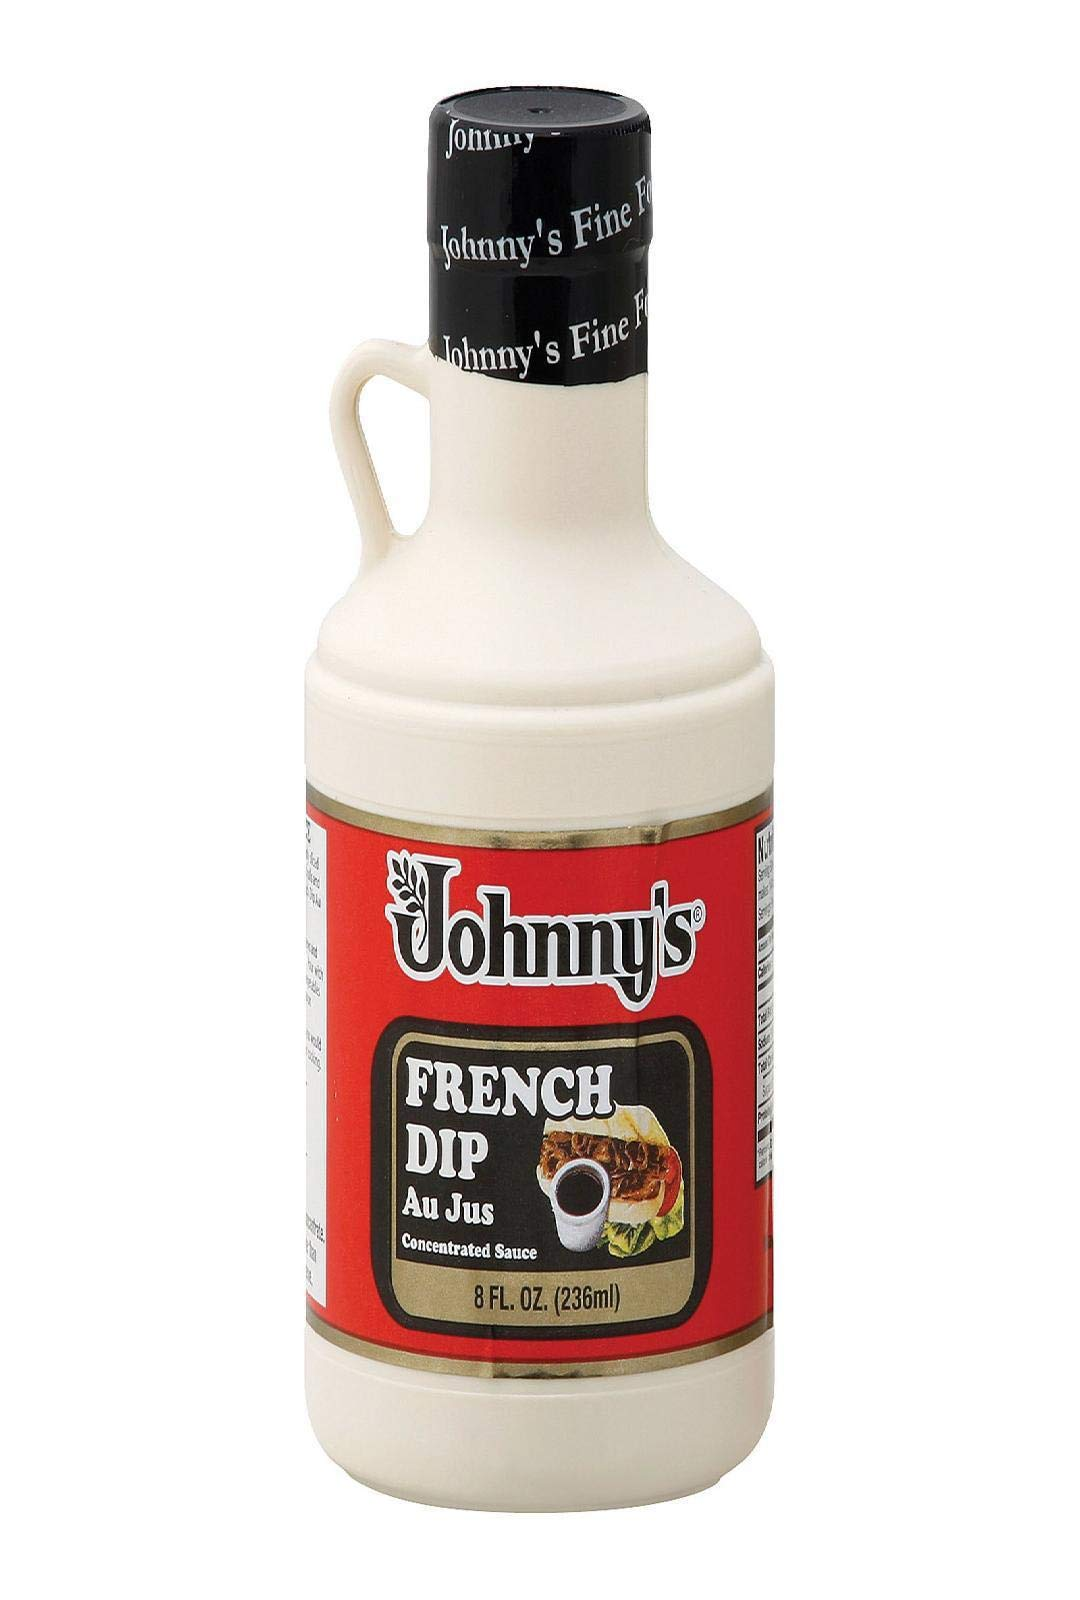 Johnny's French Dip Au Jus Concentrated Sauce -- 8 fl oz